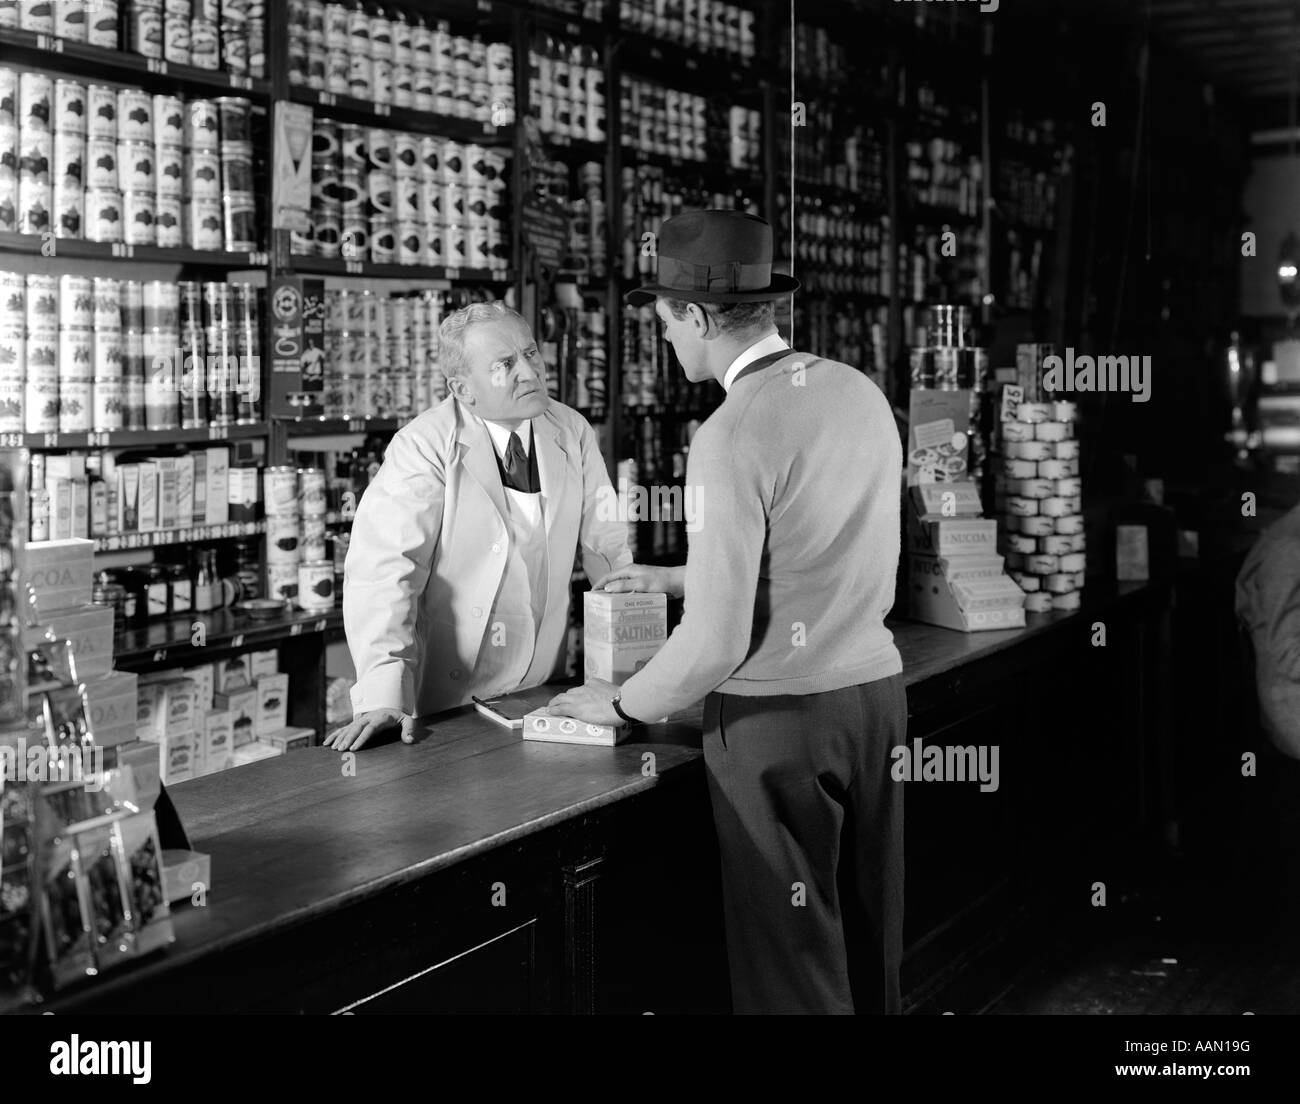 General Store Stock Photos General Store Stock Images: 1930s 1940s TWO MEN CUSTOMER AND CLERK IN GENERAL STORE